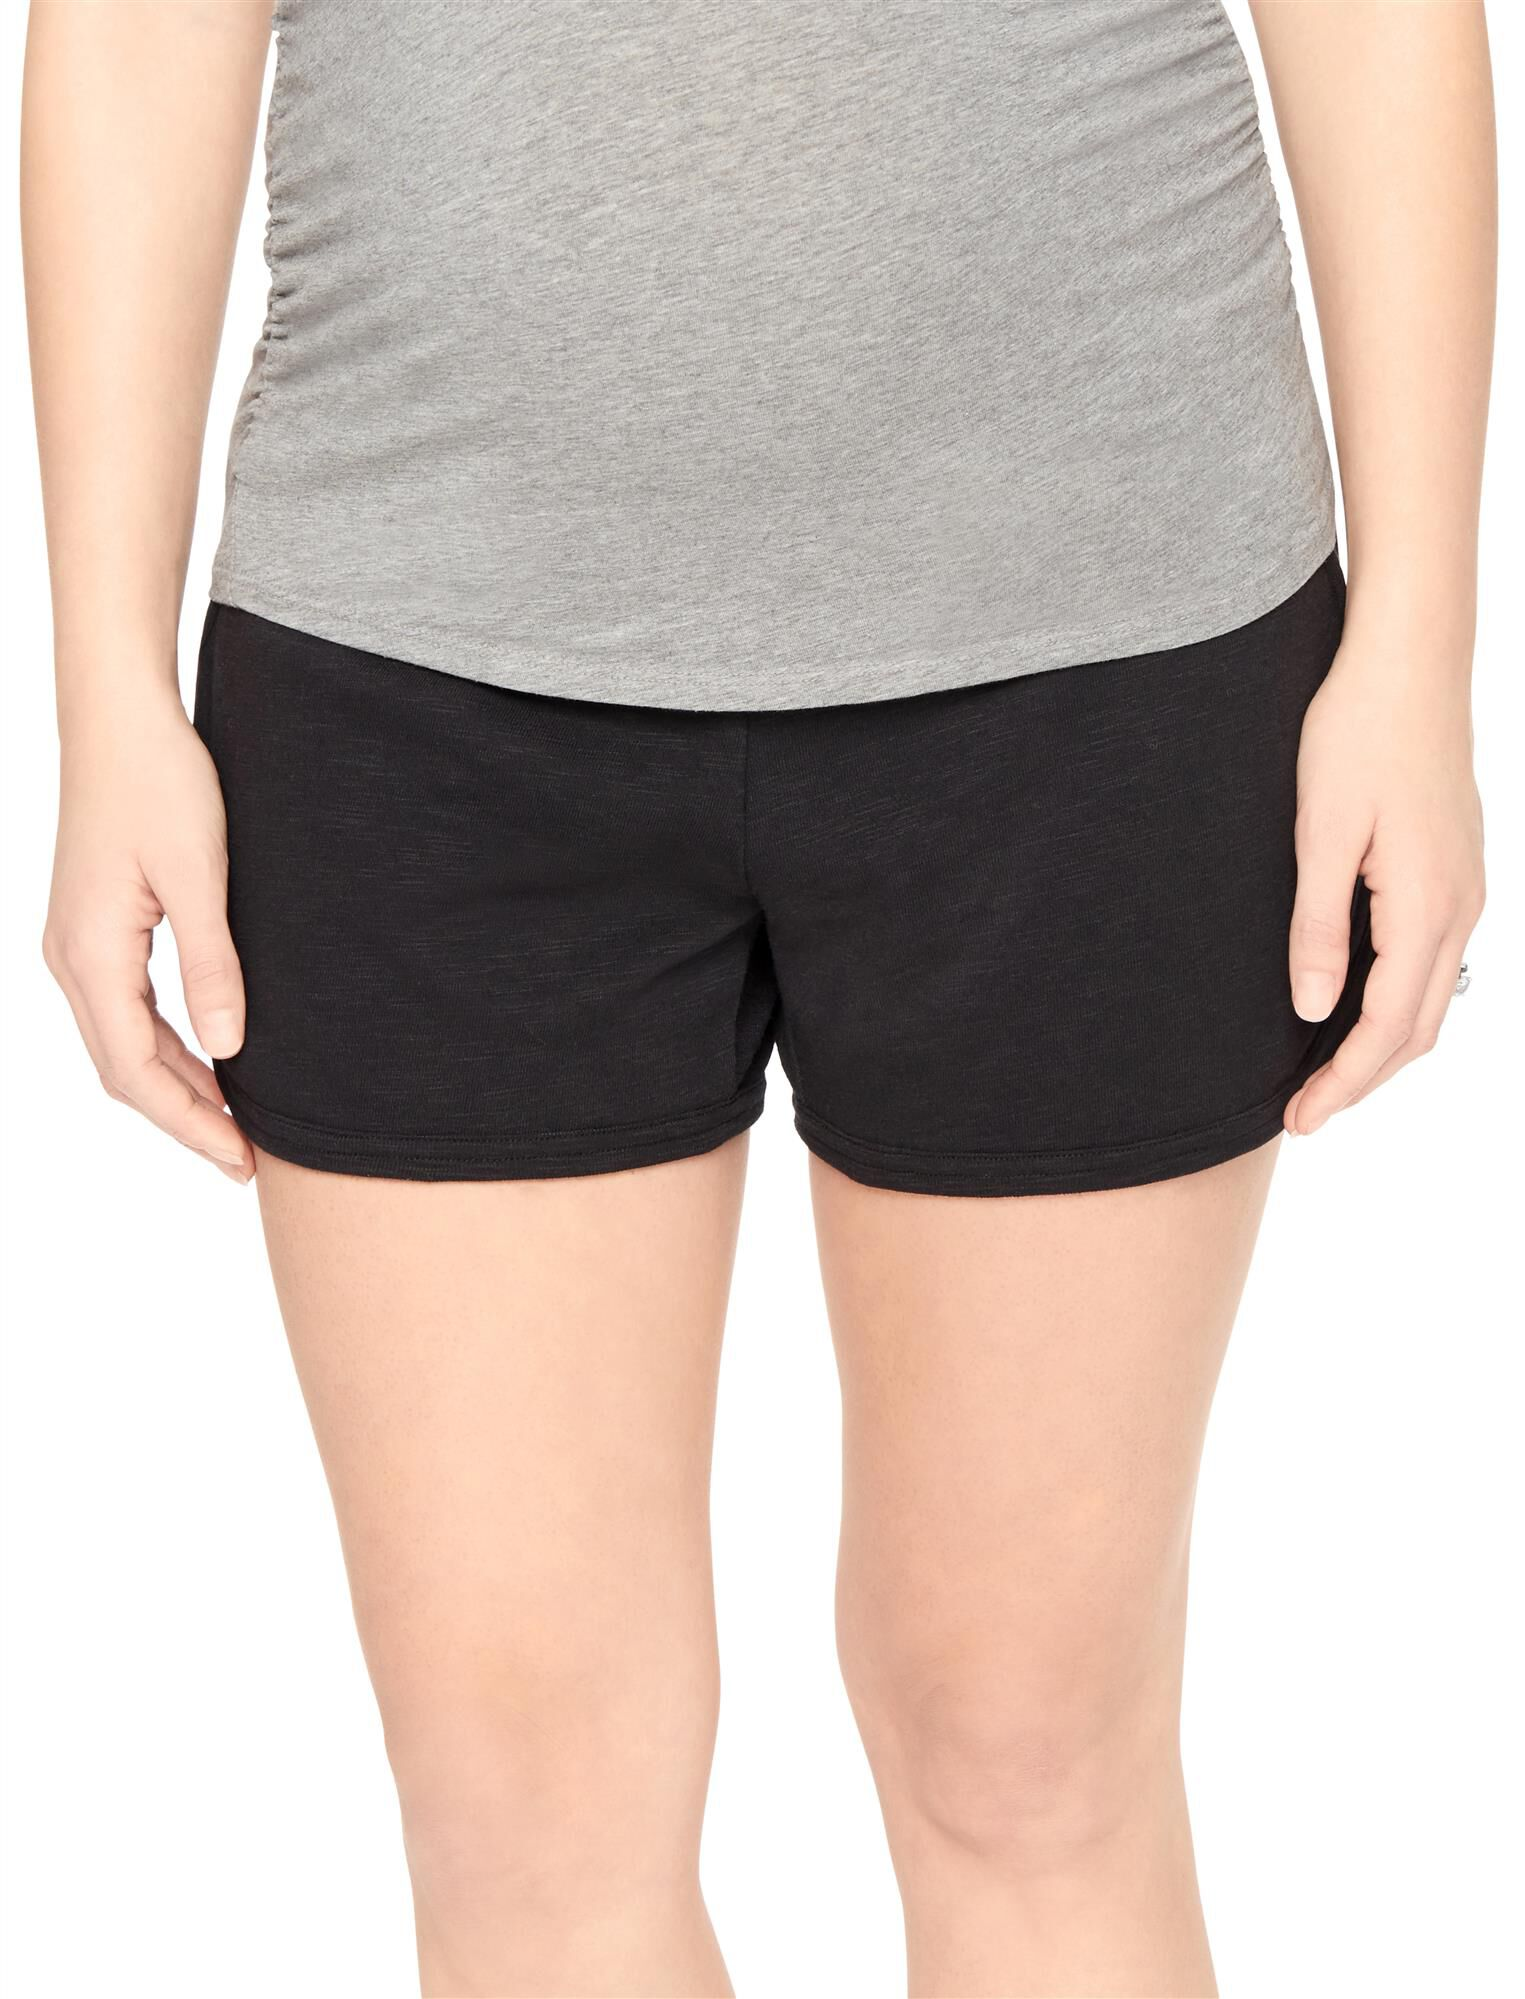 Under Belly French Terry Maternity Shorts- Solid